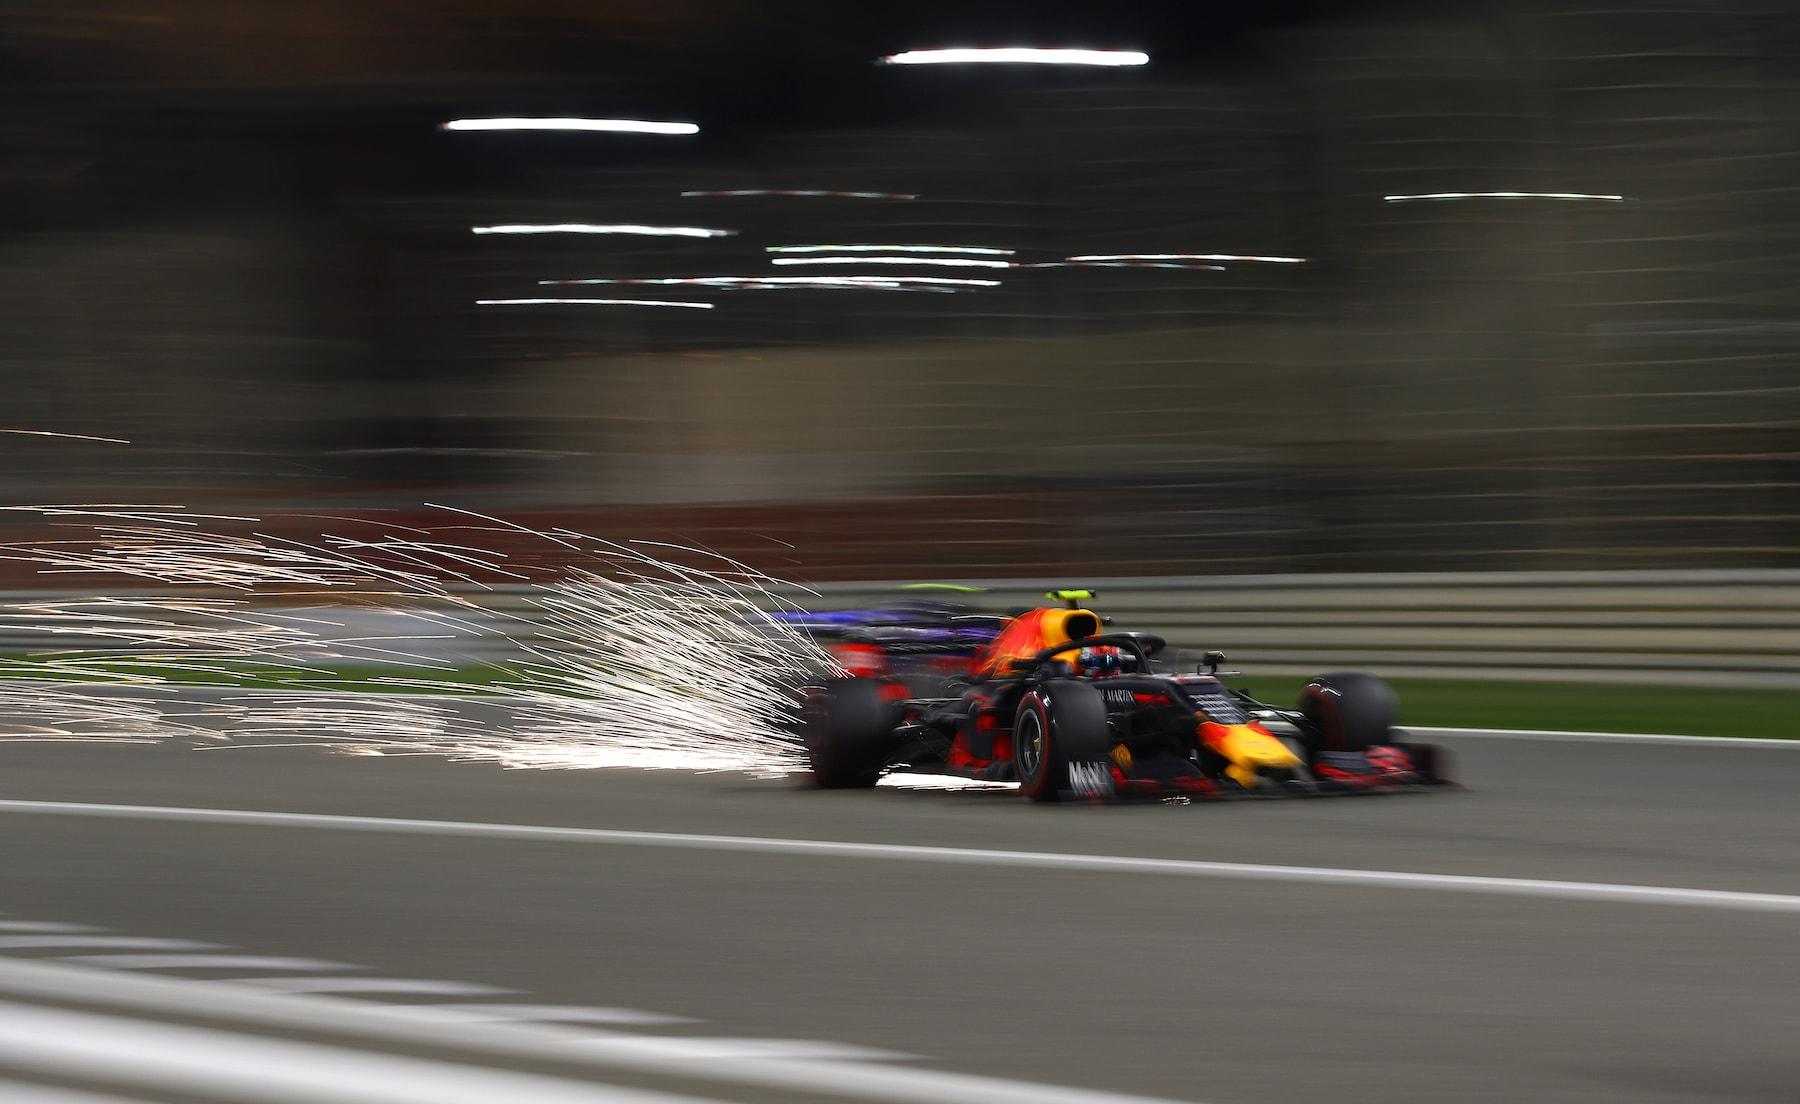 3 9 11 2019 Pierre Gasly | Red Bull RB15 | 2019 Bahrain GP 1 copy.jpg